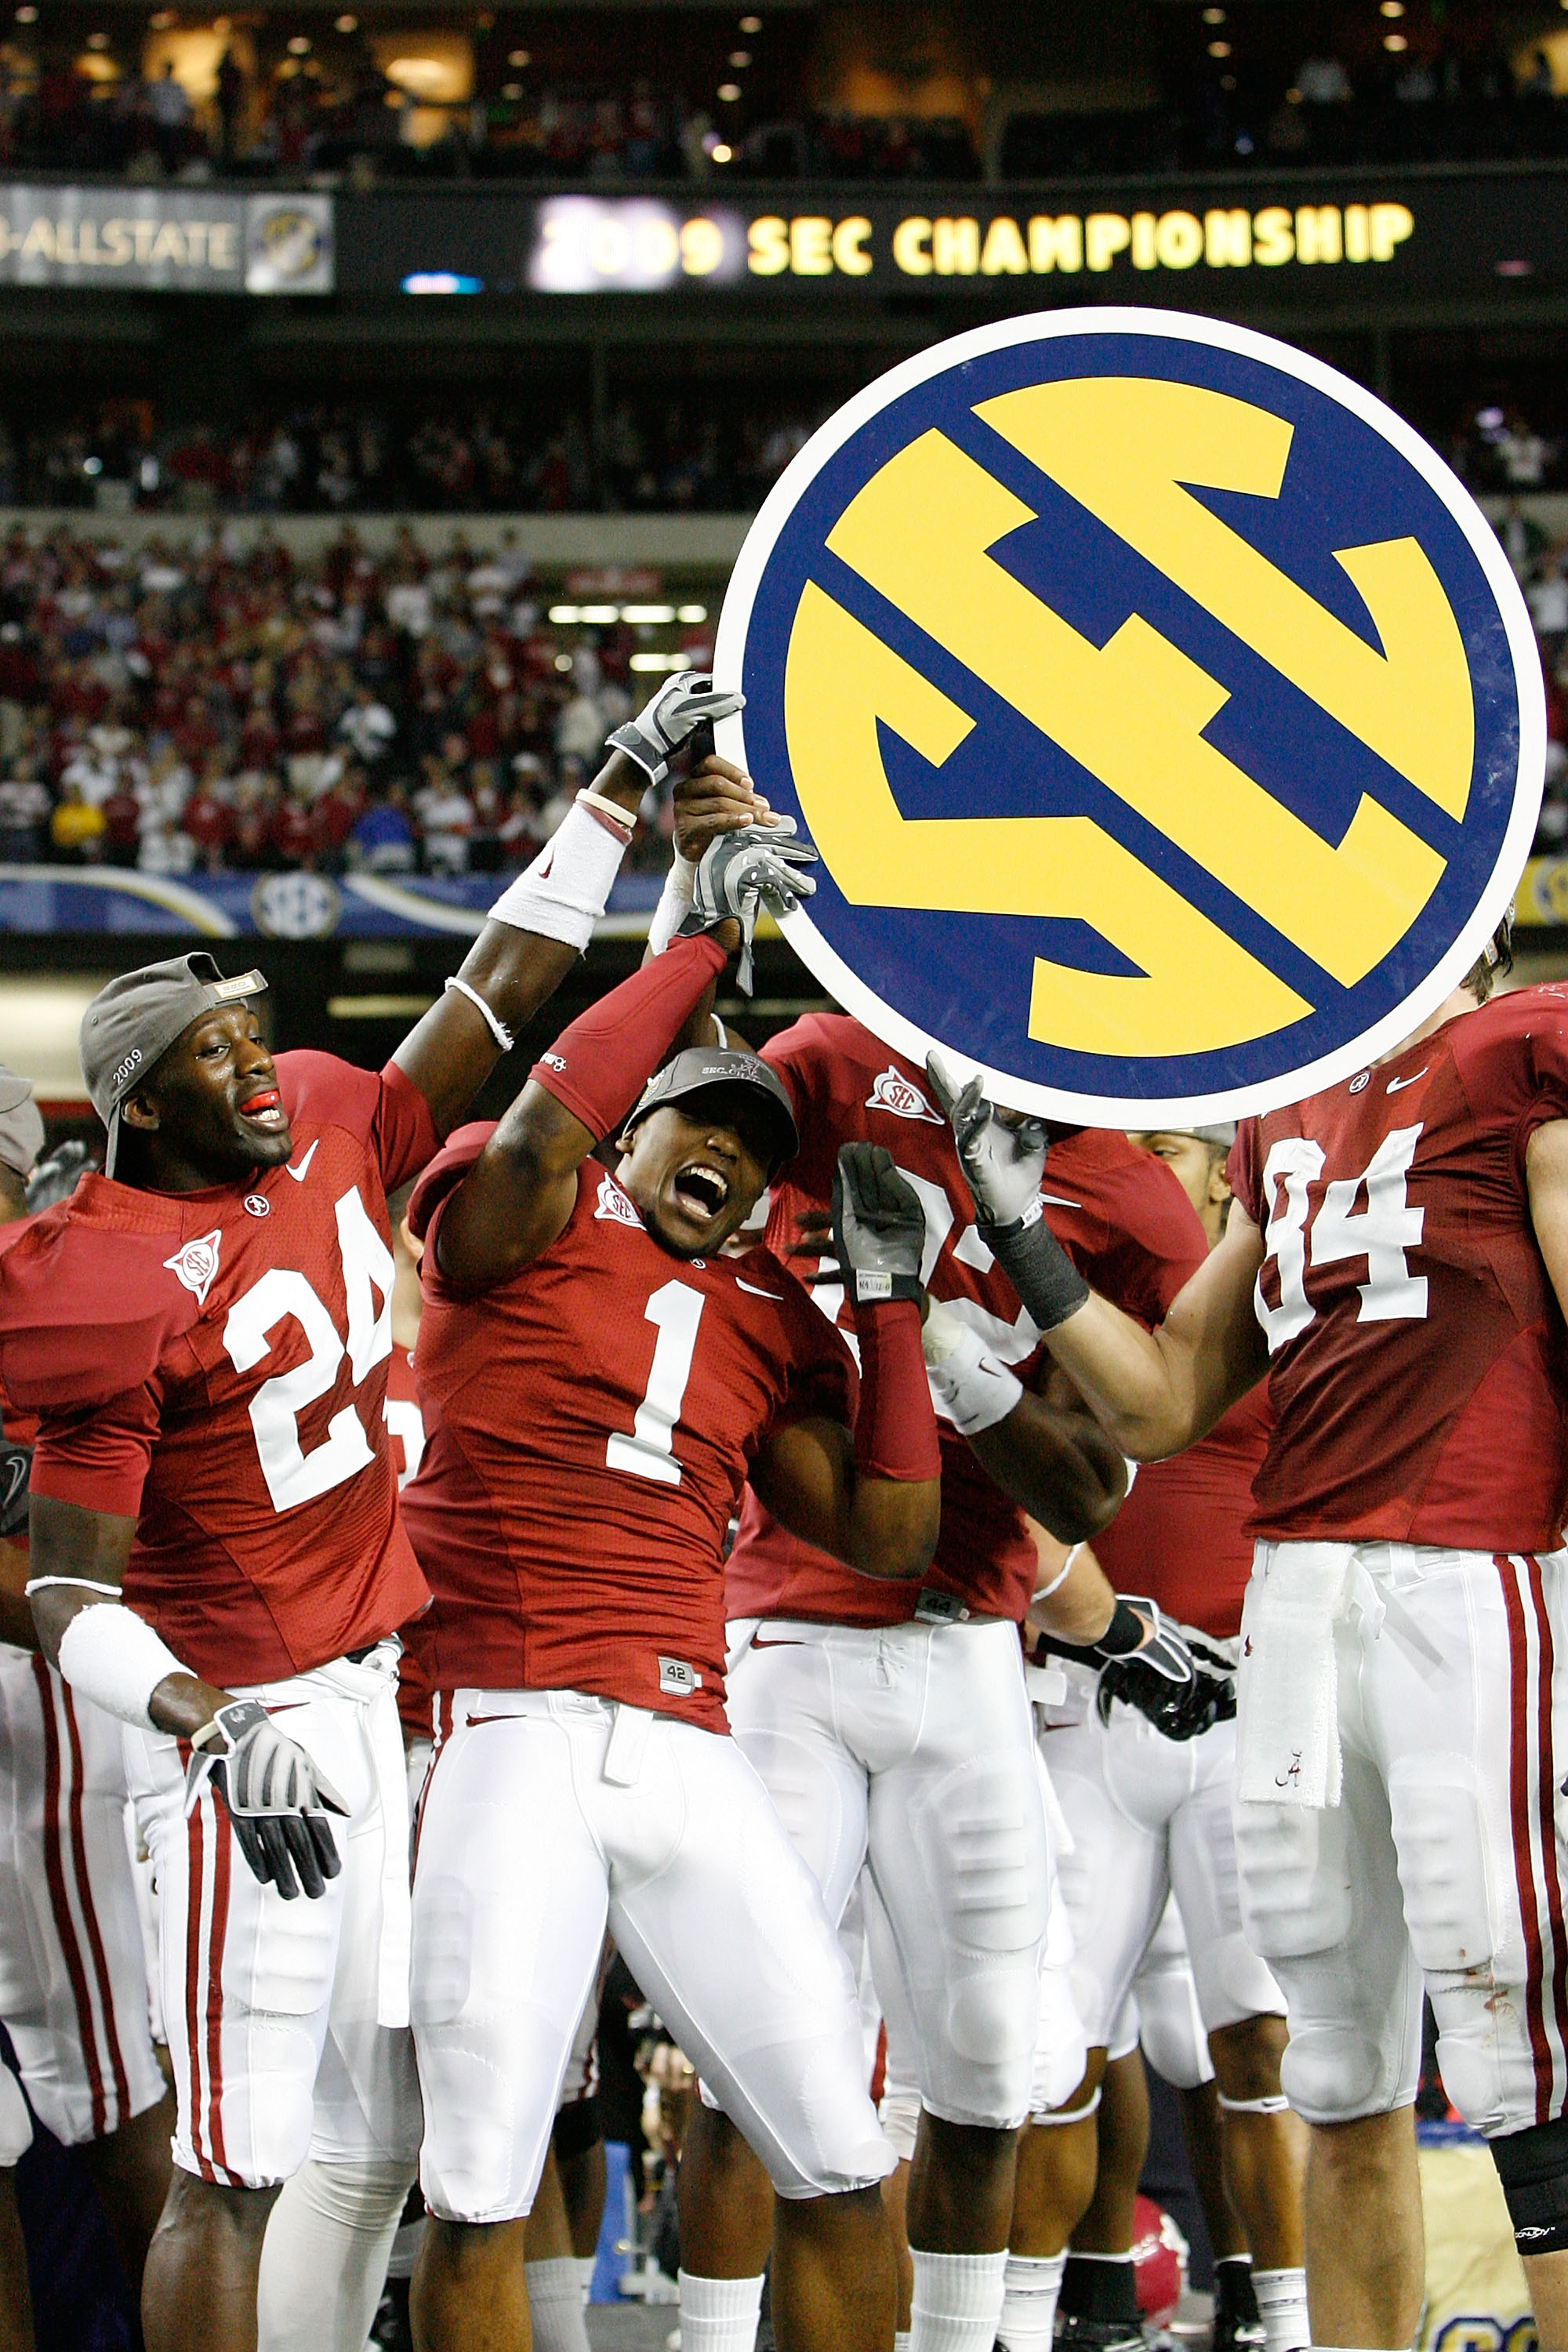 ATLANTA - DECEMBER 05:  Members of the Alabama Crimson Tide celebrate after defeating the Florida Gators 31-13 during the SEC Championship at the Georgia Dome on December 5, 2009 in Atlanta, Georgia.  (Photo by Chris Graythen/Getty Images)